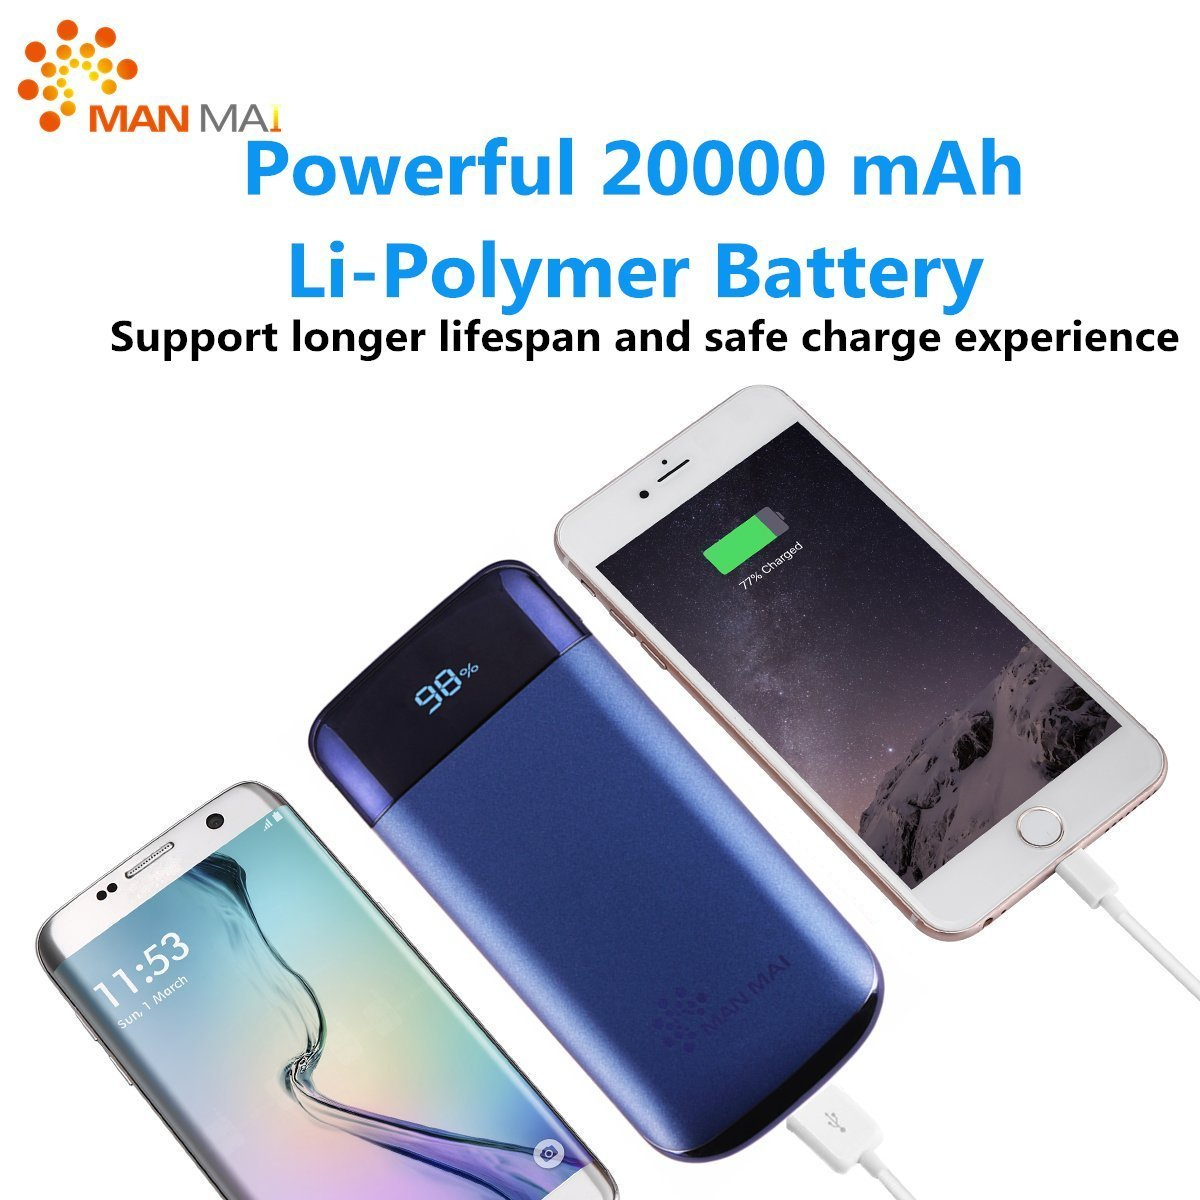 KUPPET 20000mAh Power Bank (Dual USB Port, 3.1A Total) External Portable Charger Battery Pack Portable Charger with LED Flashlight for iPhone 7, iPhone 8,iphone X,iPad Pro, Galaxy S8 Note8 and More by KUPPET (Image #5)